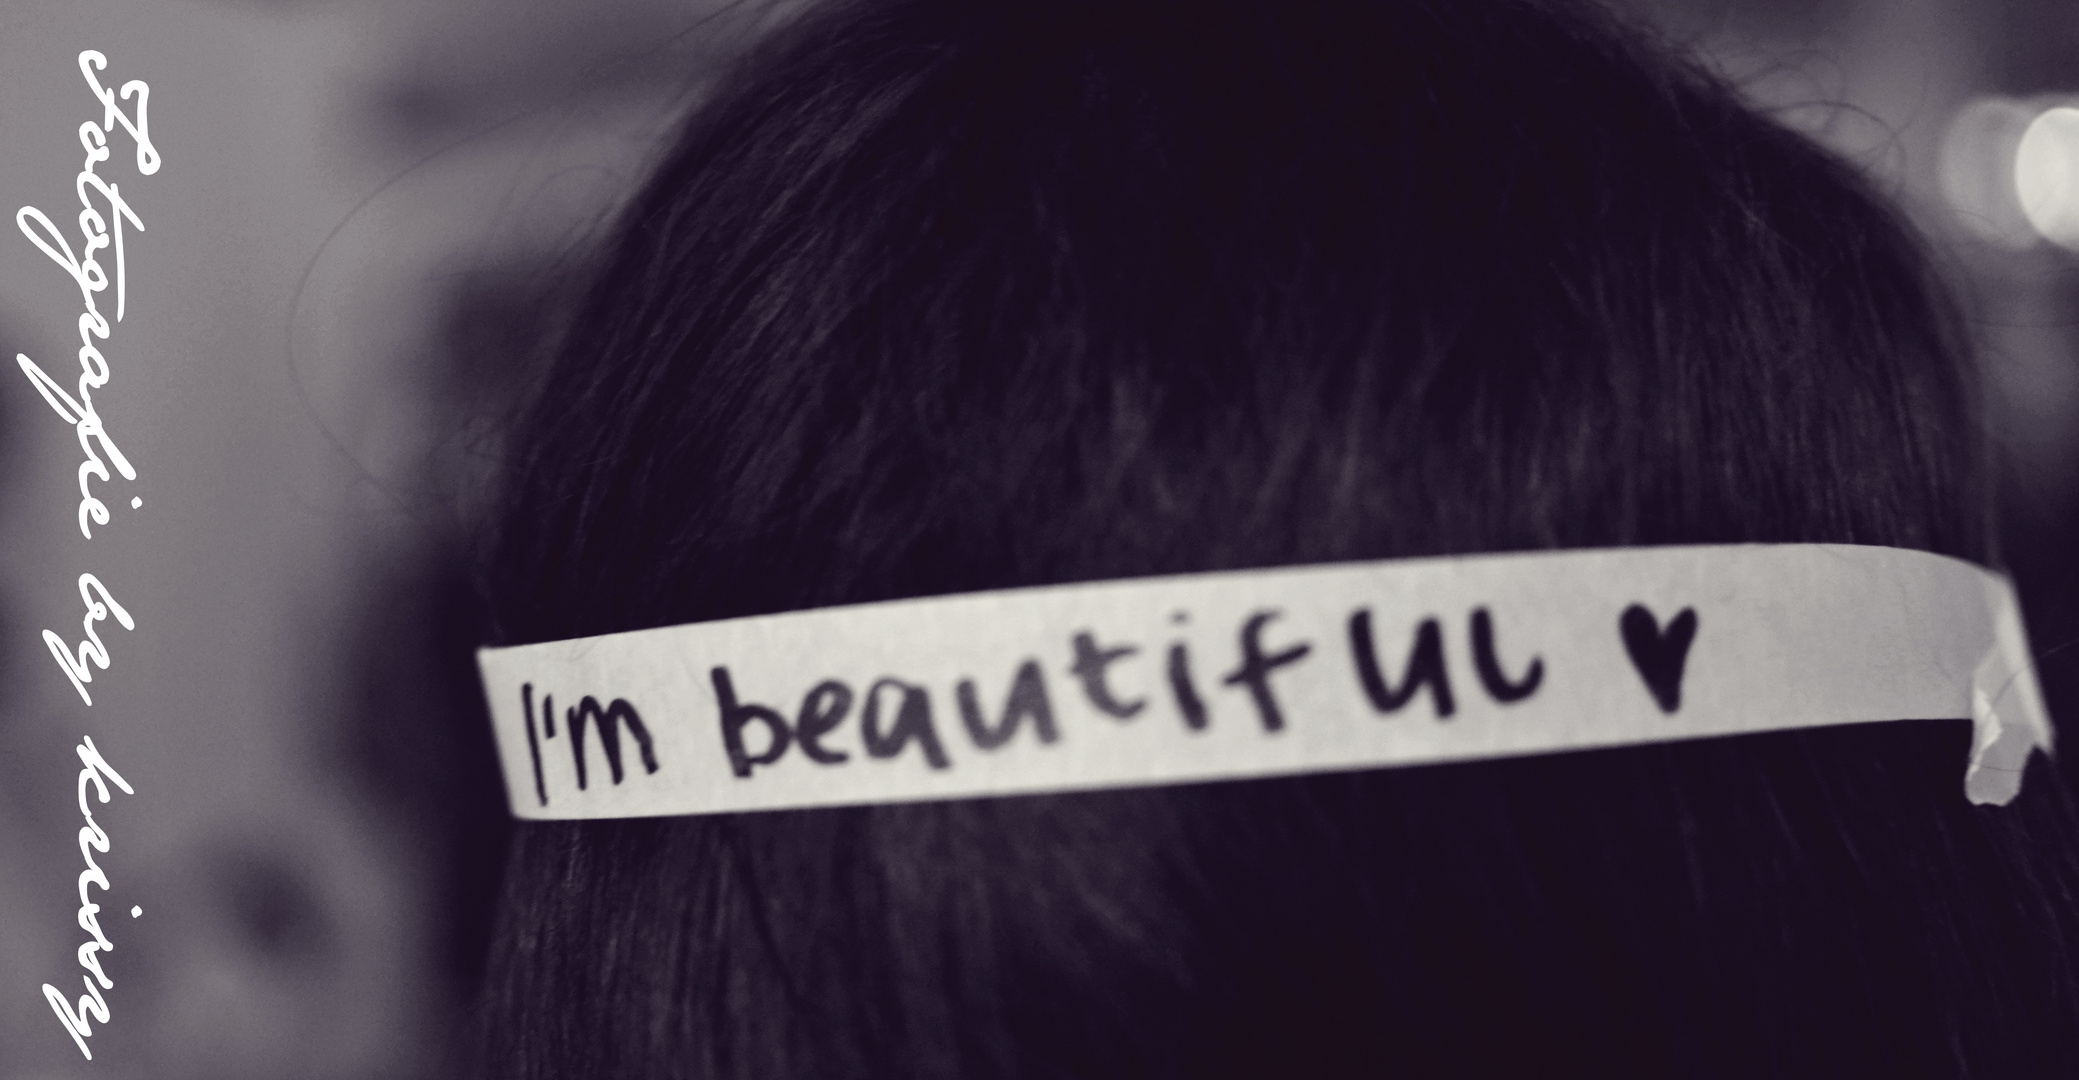 you are beautyful (: